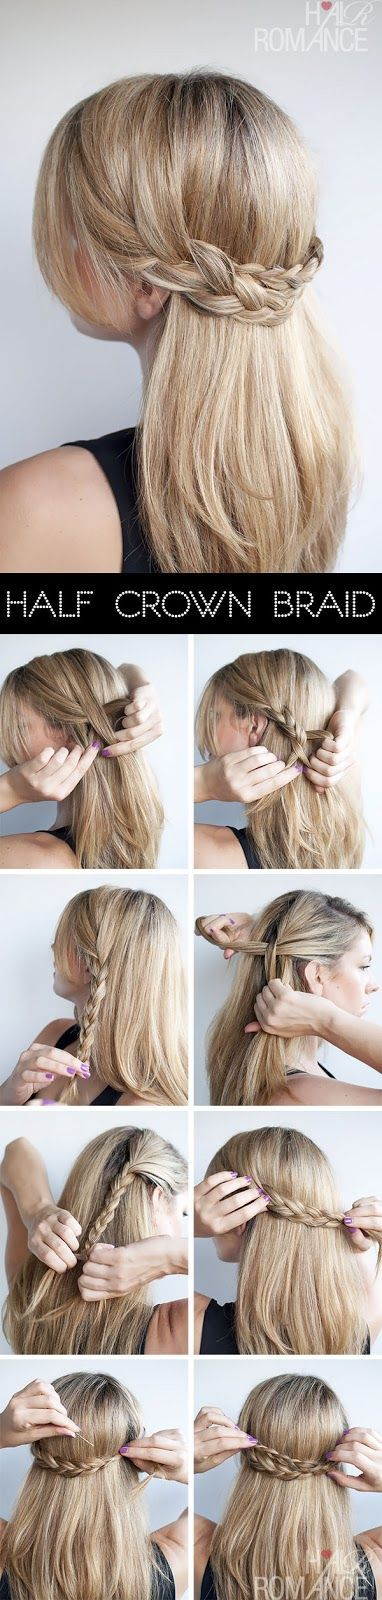 hairstyles: Half Crown Braid Hairstyle Tutorial #hair #hairdo #hairstyles #hairstylesforlonghair #hairtips #tutorial #DIY #stepbystep #longhair #howto #practical #guide #everydayhairstyle #easyhairstyle #idea #inspiration #style